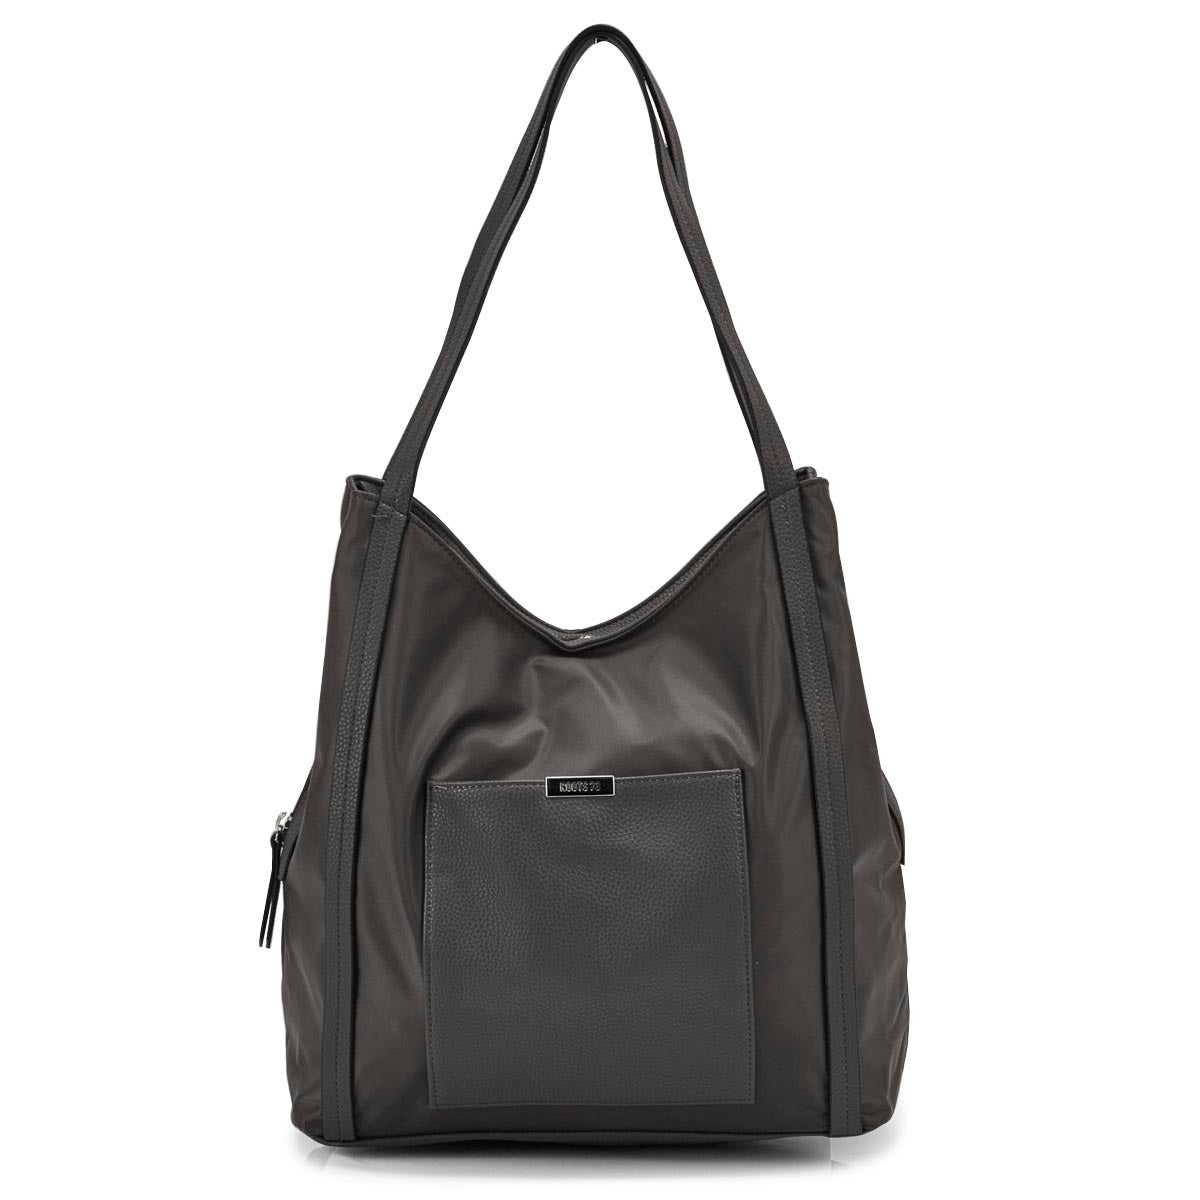 Lds Roots73 grey 3 compartment satchel